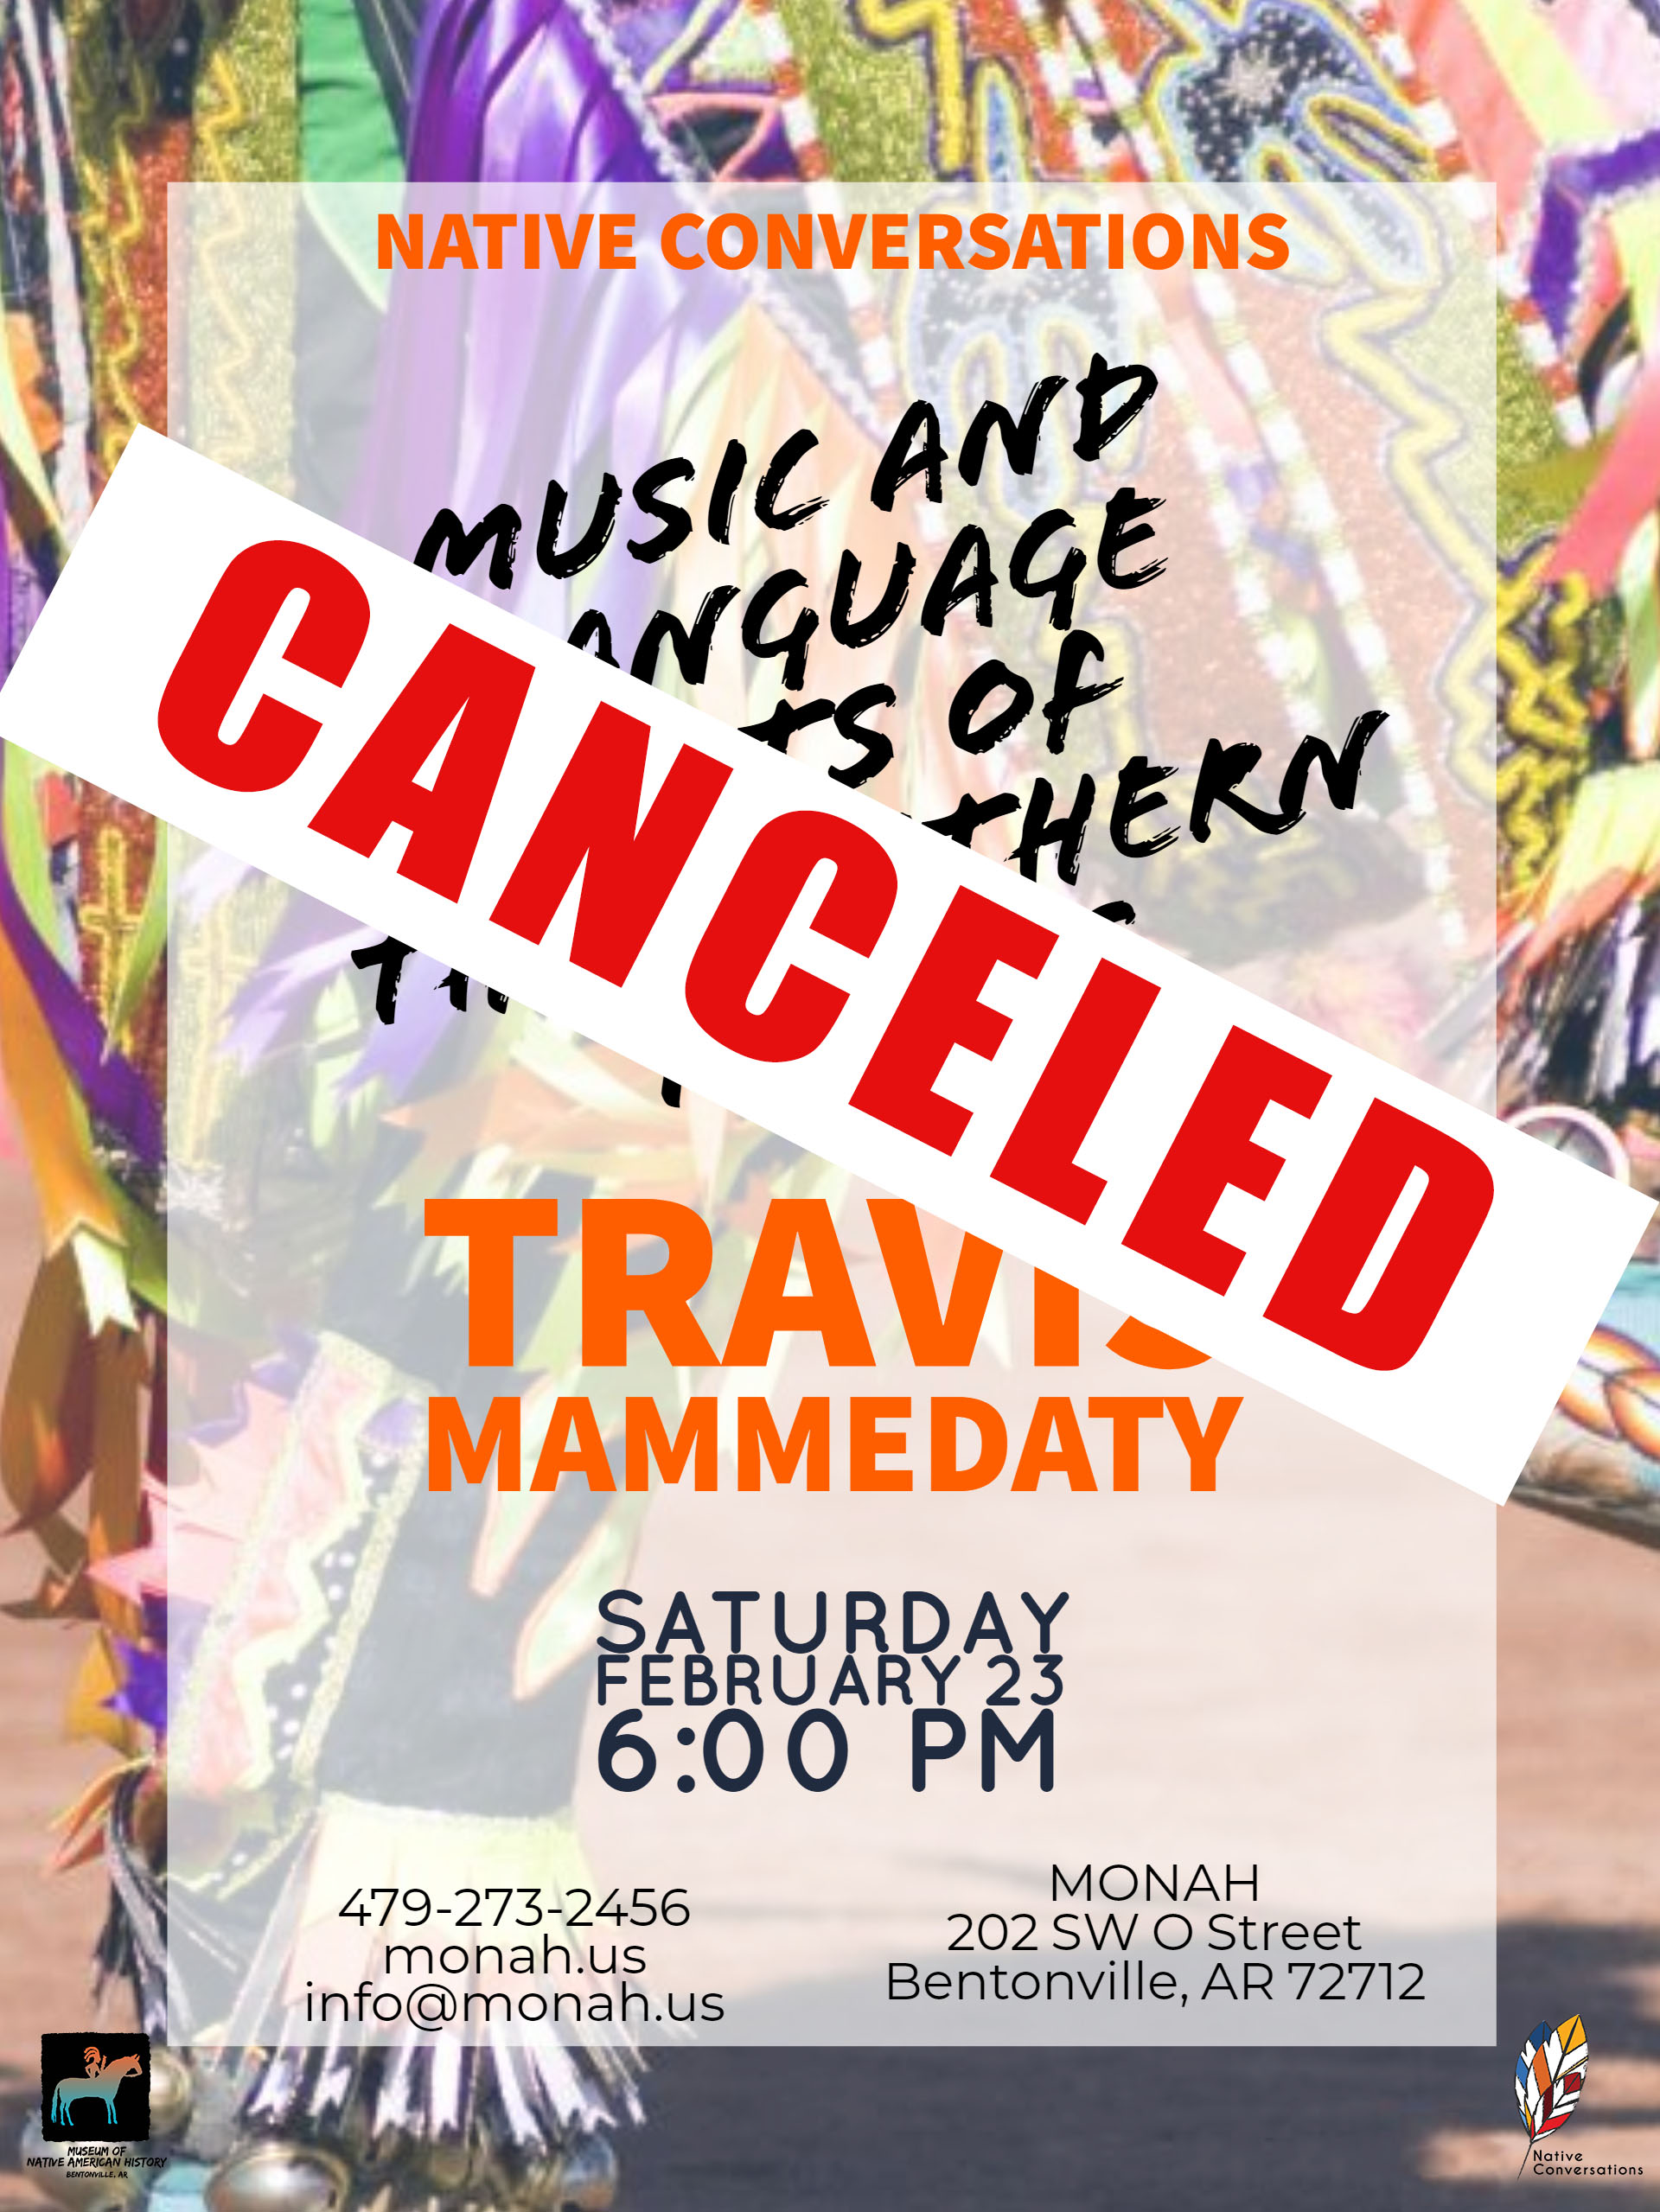 Travis Mammedaty Leaflet (1) cancelled.jpg